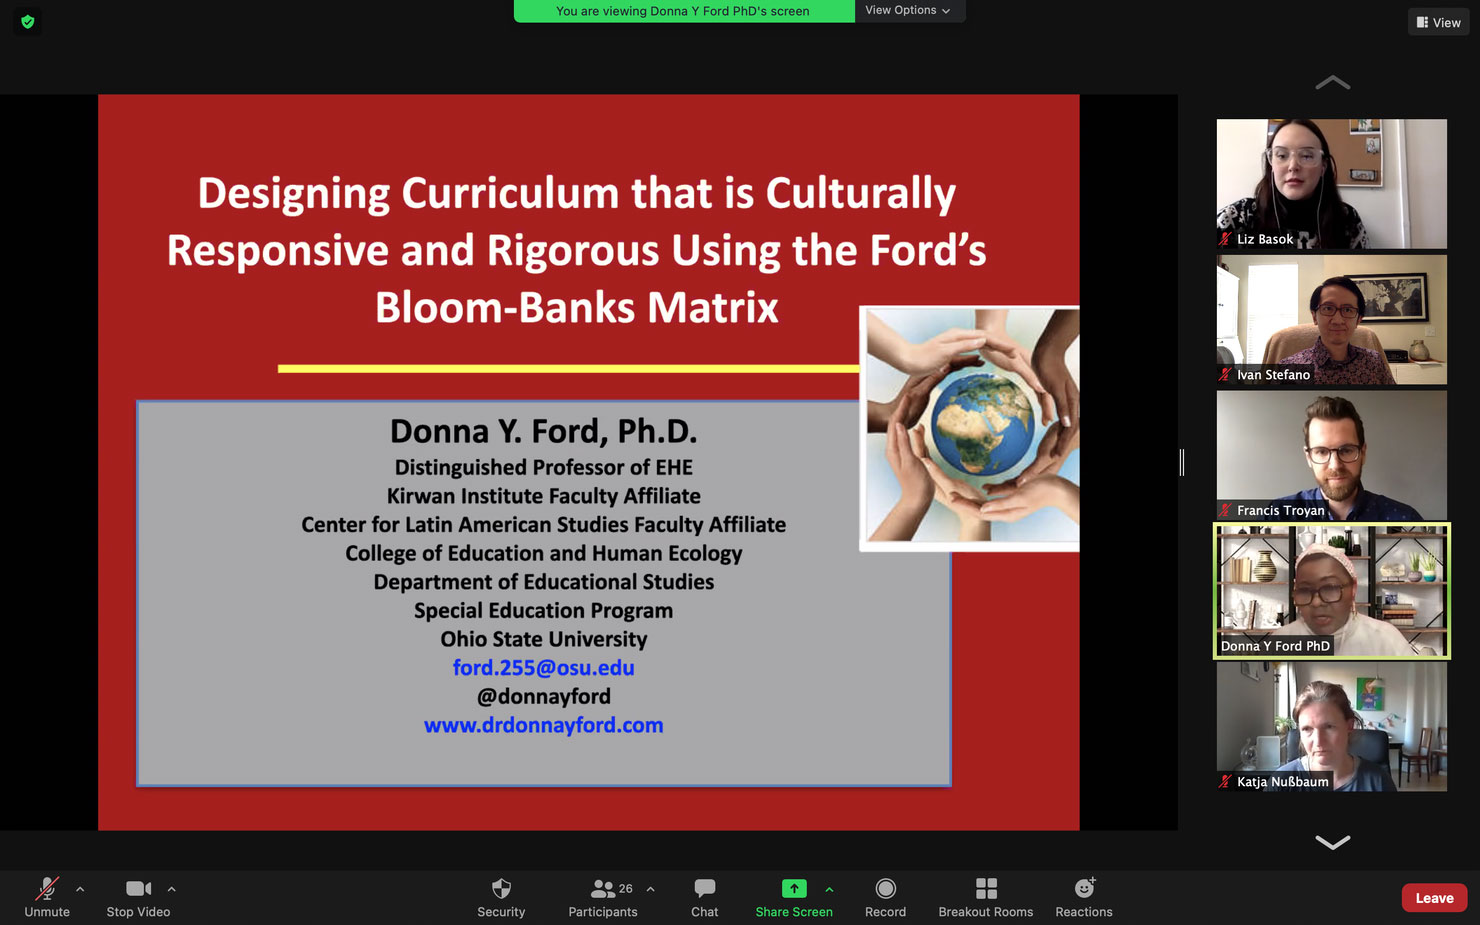 screenshot of presentation on designing curriculum that is a culturally responsive and rigorous